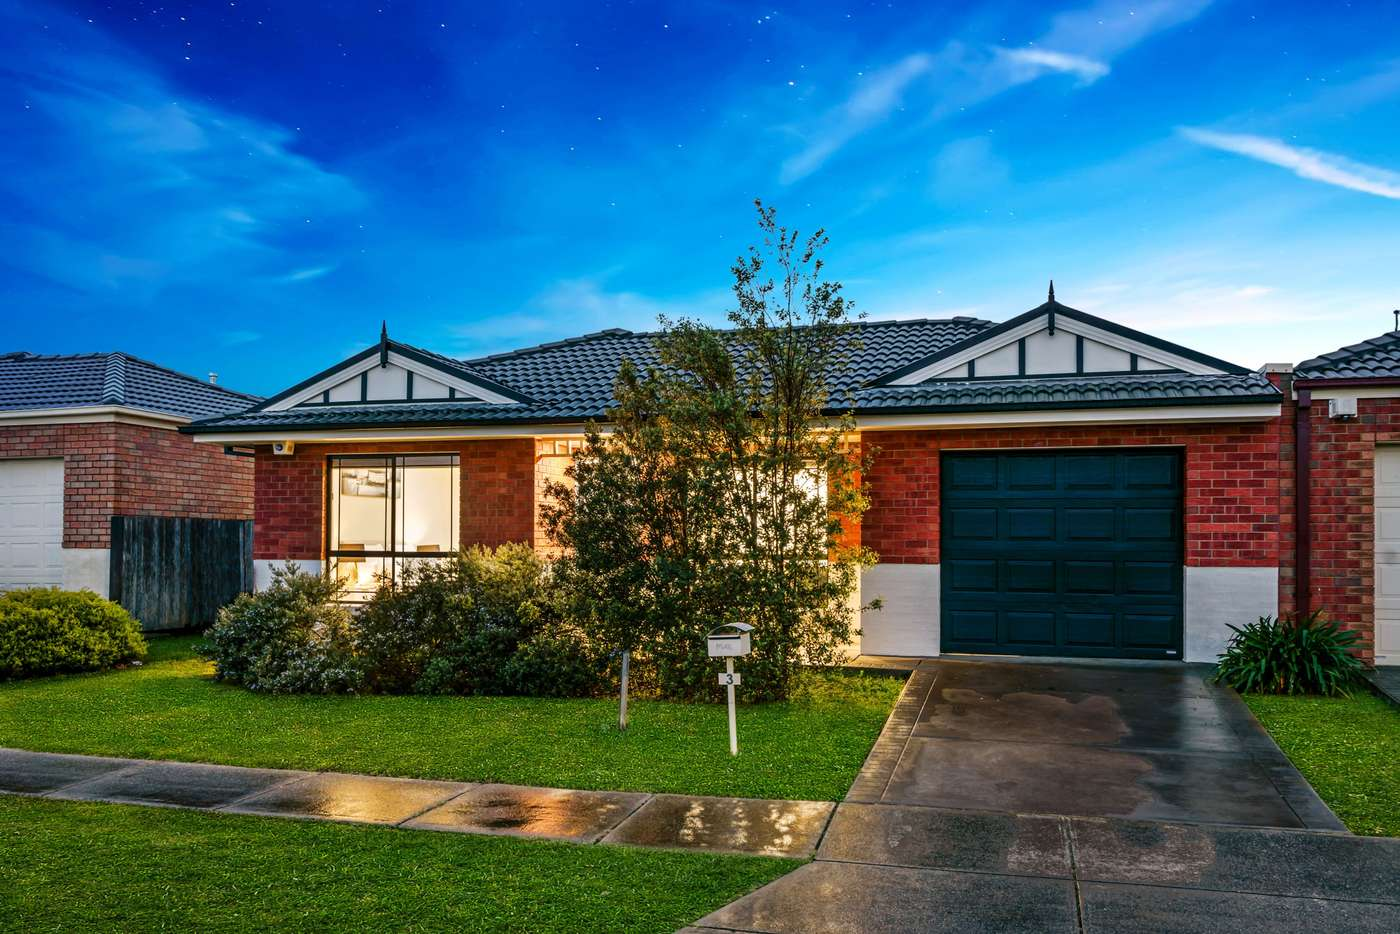 Main view of Homely house listing, 3 Clearview Court, Hoppers Crossing VIC 3029